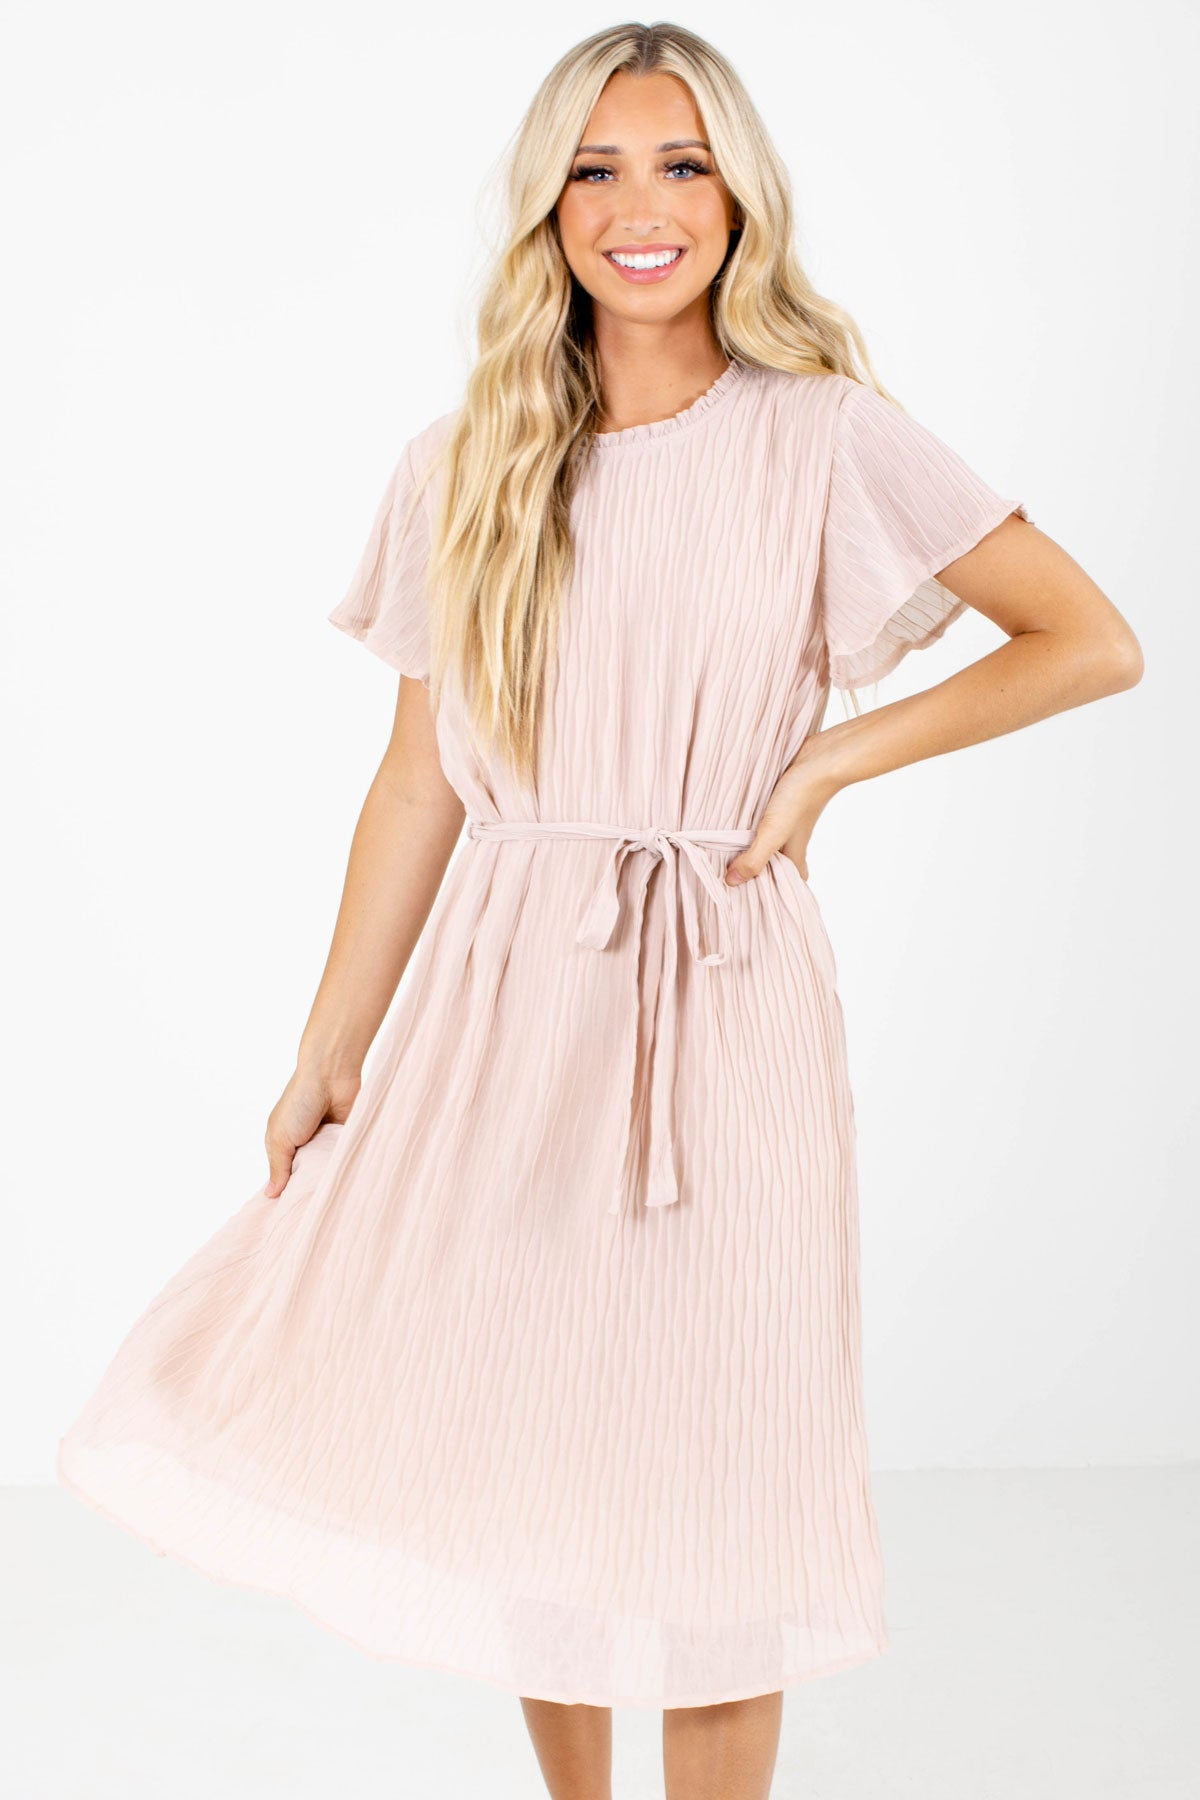 Pink High-Quality Textured Material Boutique Knee-Length Dresses for Women